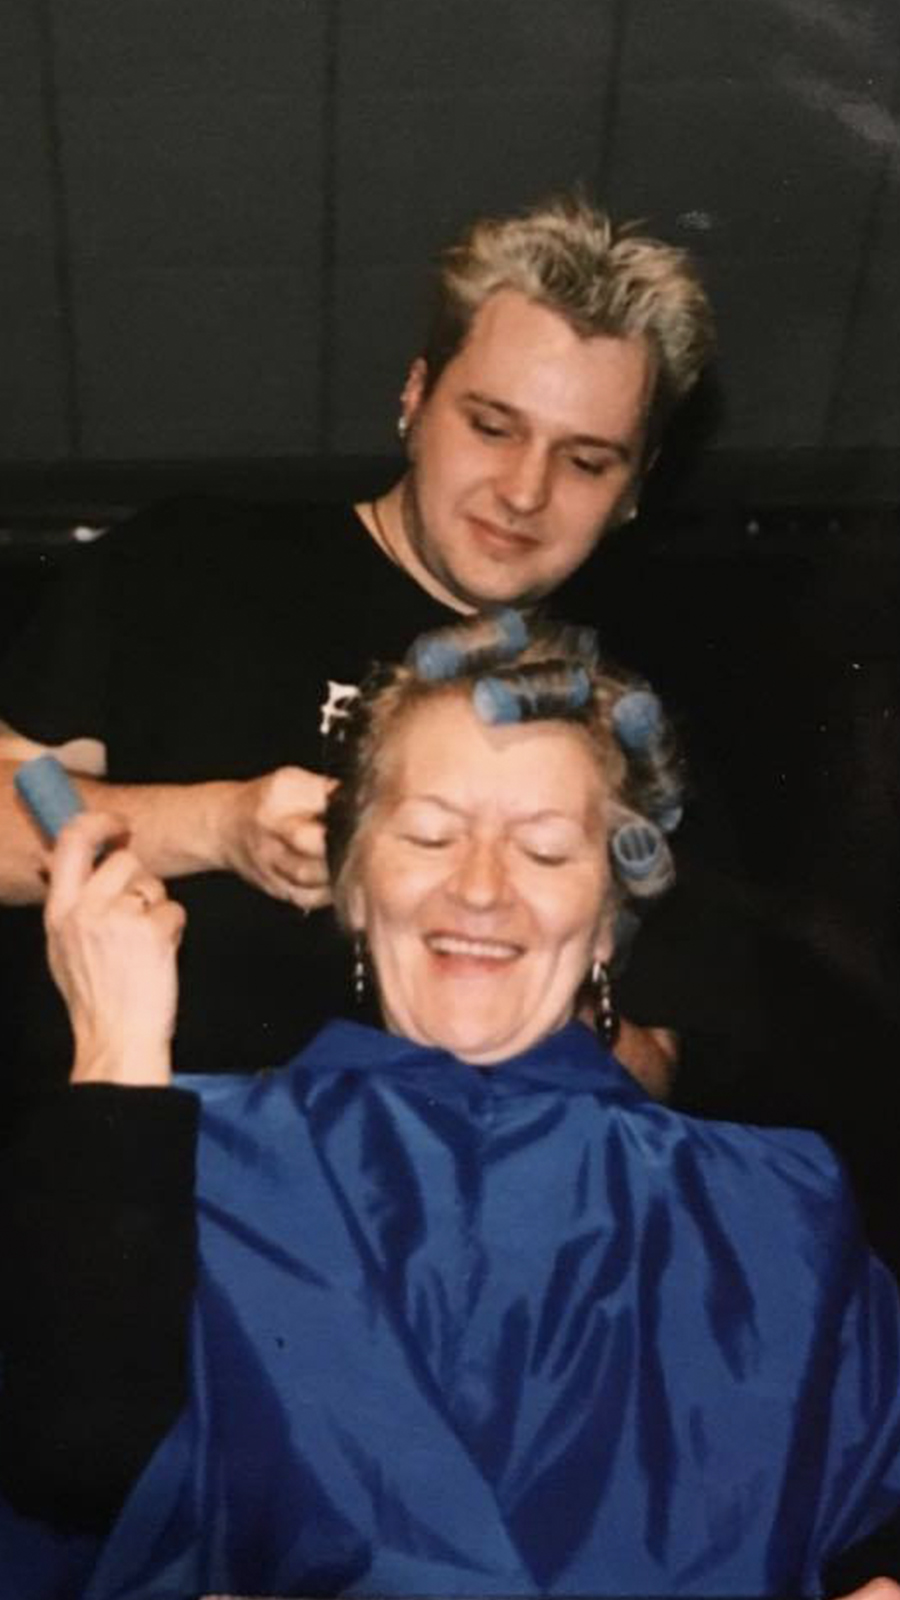 Tony's first hair show, in the 90s